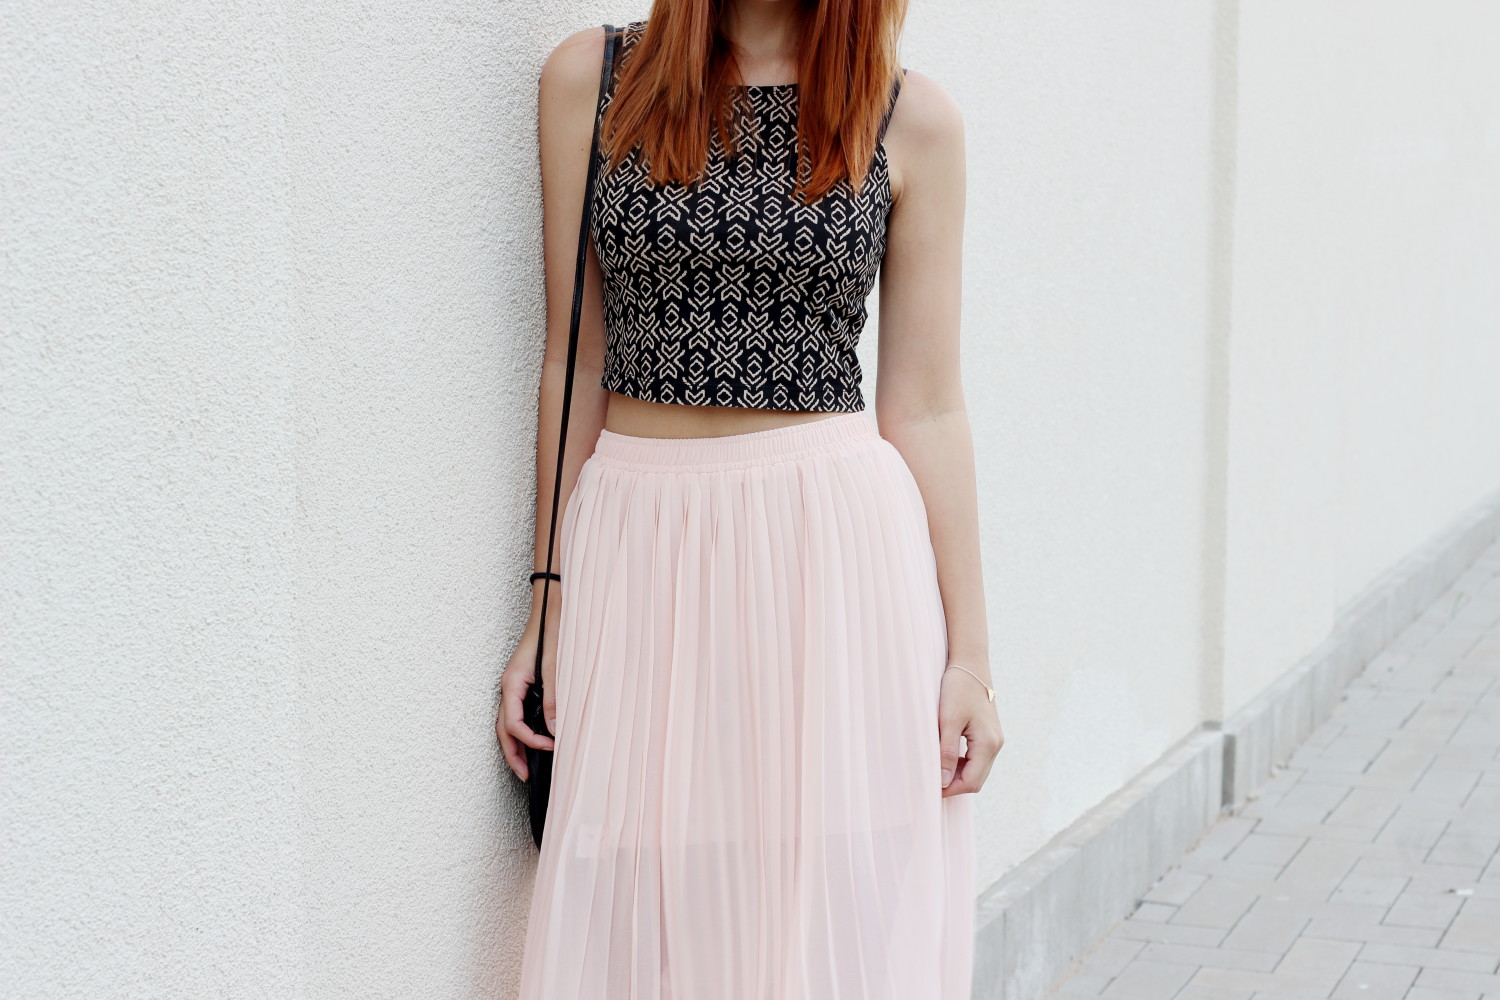 bezaubernde nana, fashionblog, germany, modeblog, deutschland, outfit, mode, streetstyle, rosa maxirock forever21, schwarzes crop top muster forever21, goldene sandalen new look, runde tasche vintage, rosegold armband mit dreieck h&m, sommer outfit